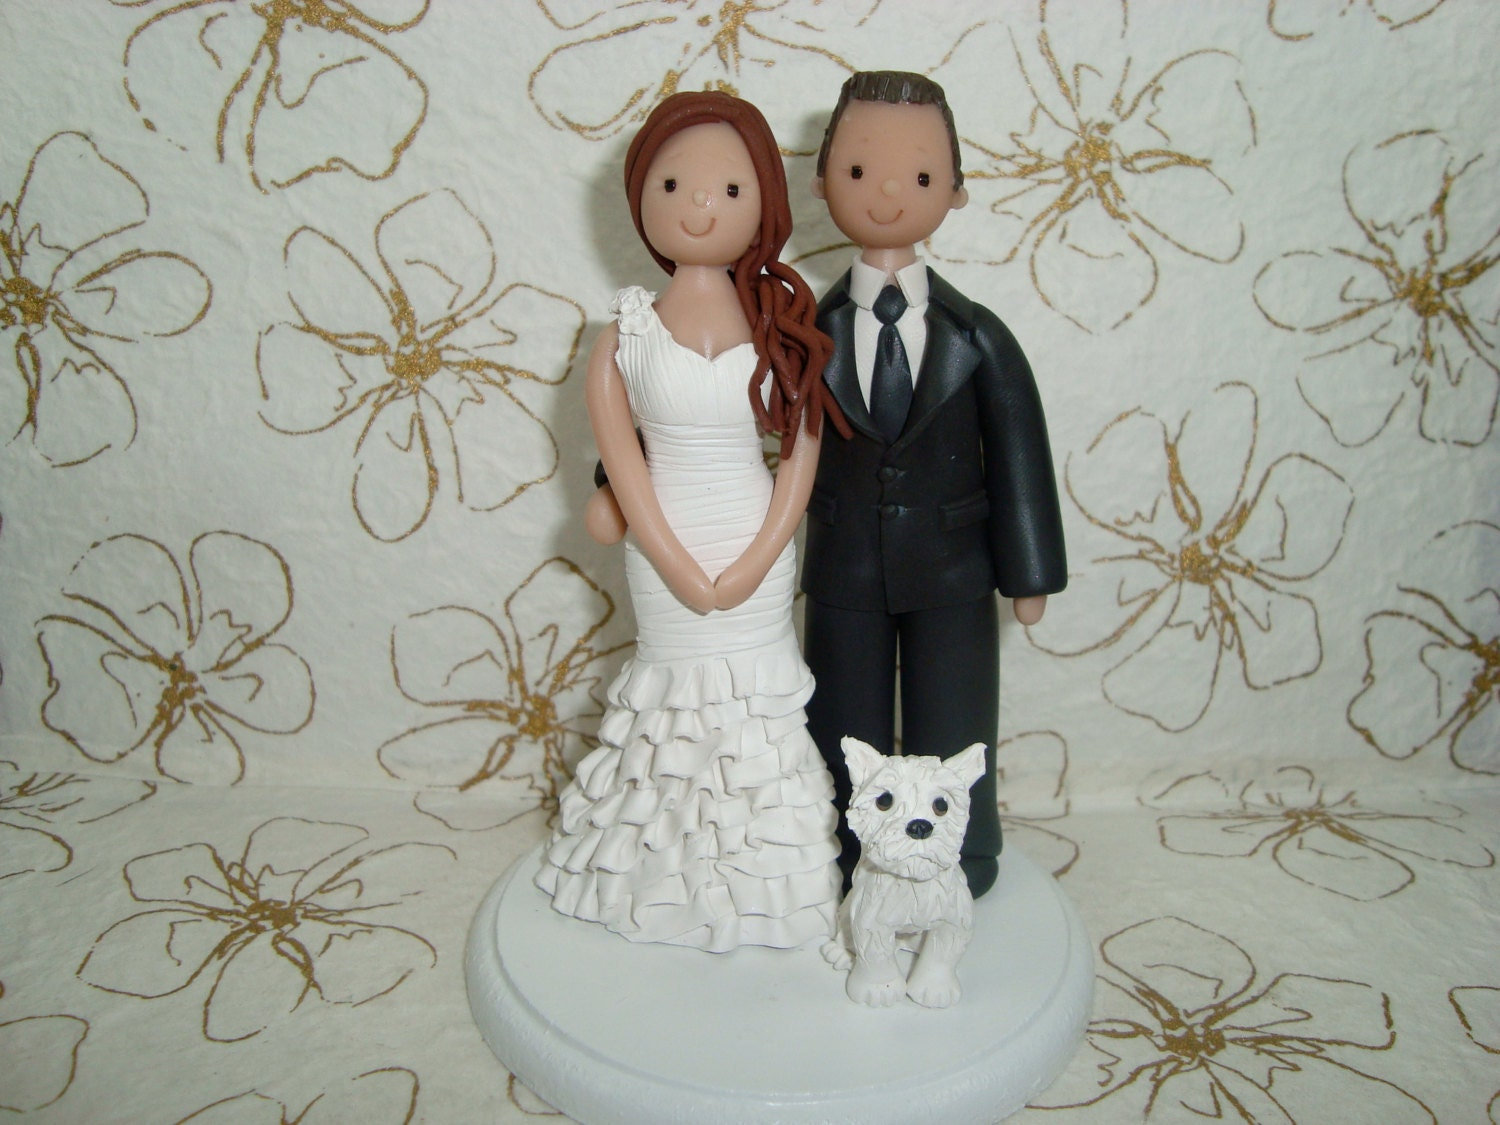 wedding cake toppers Personalized Wedding Cake Toppers